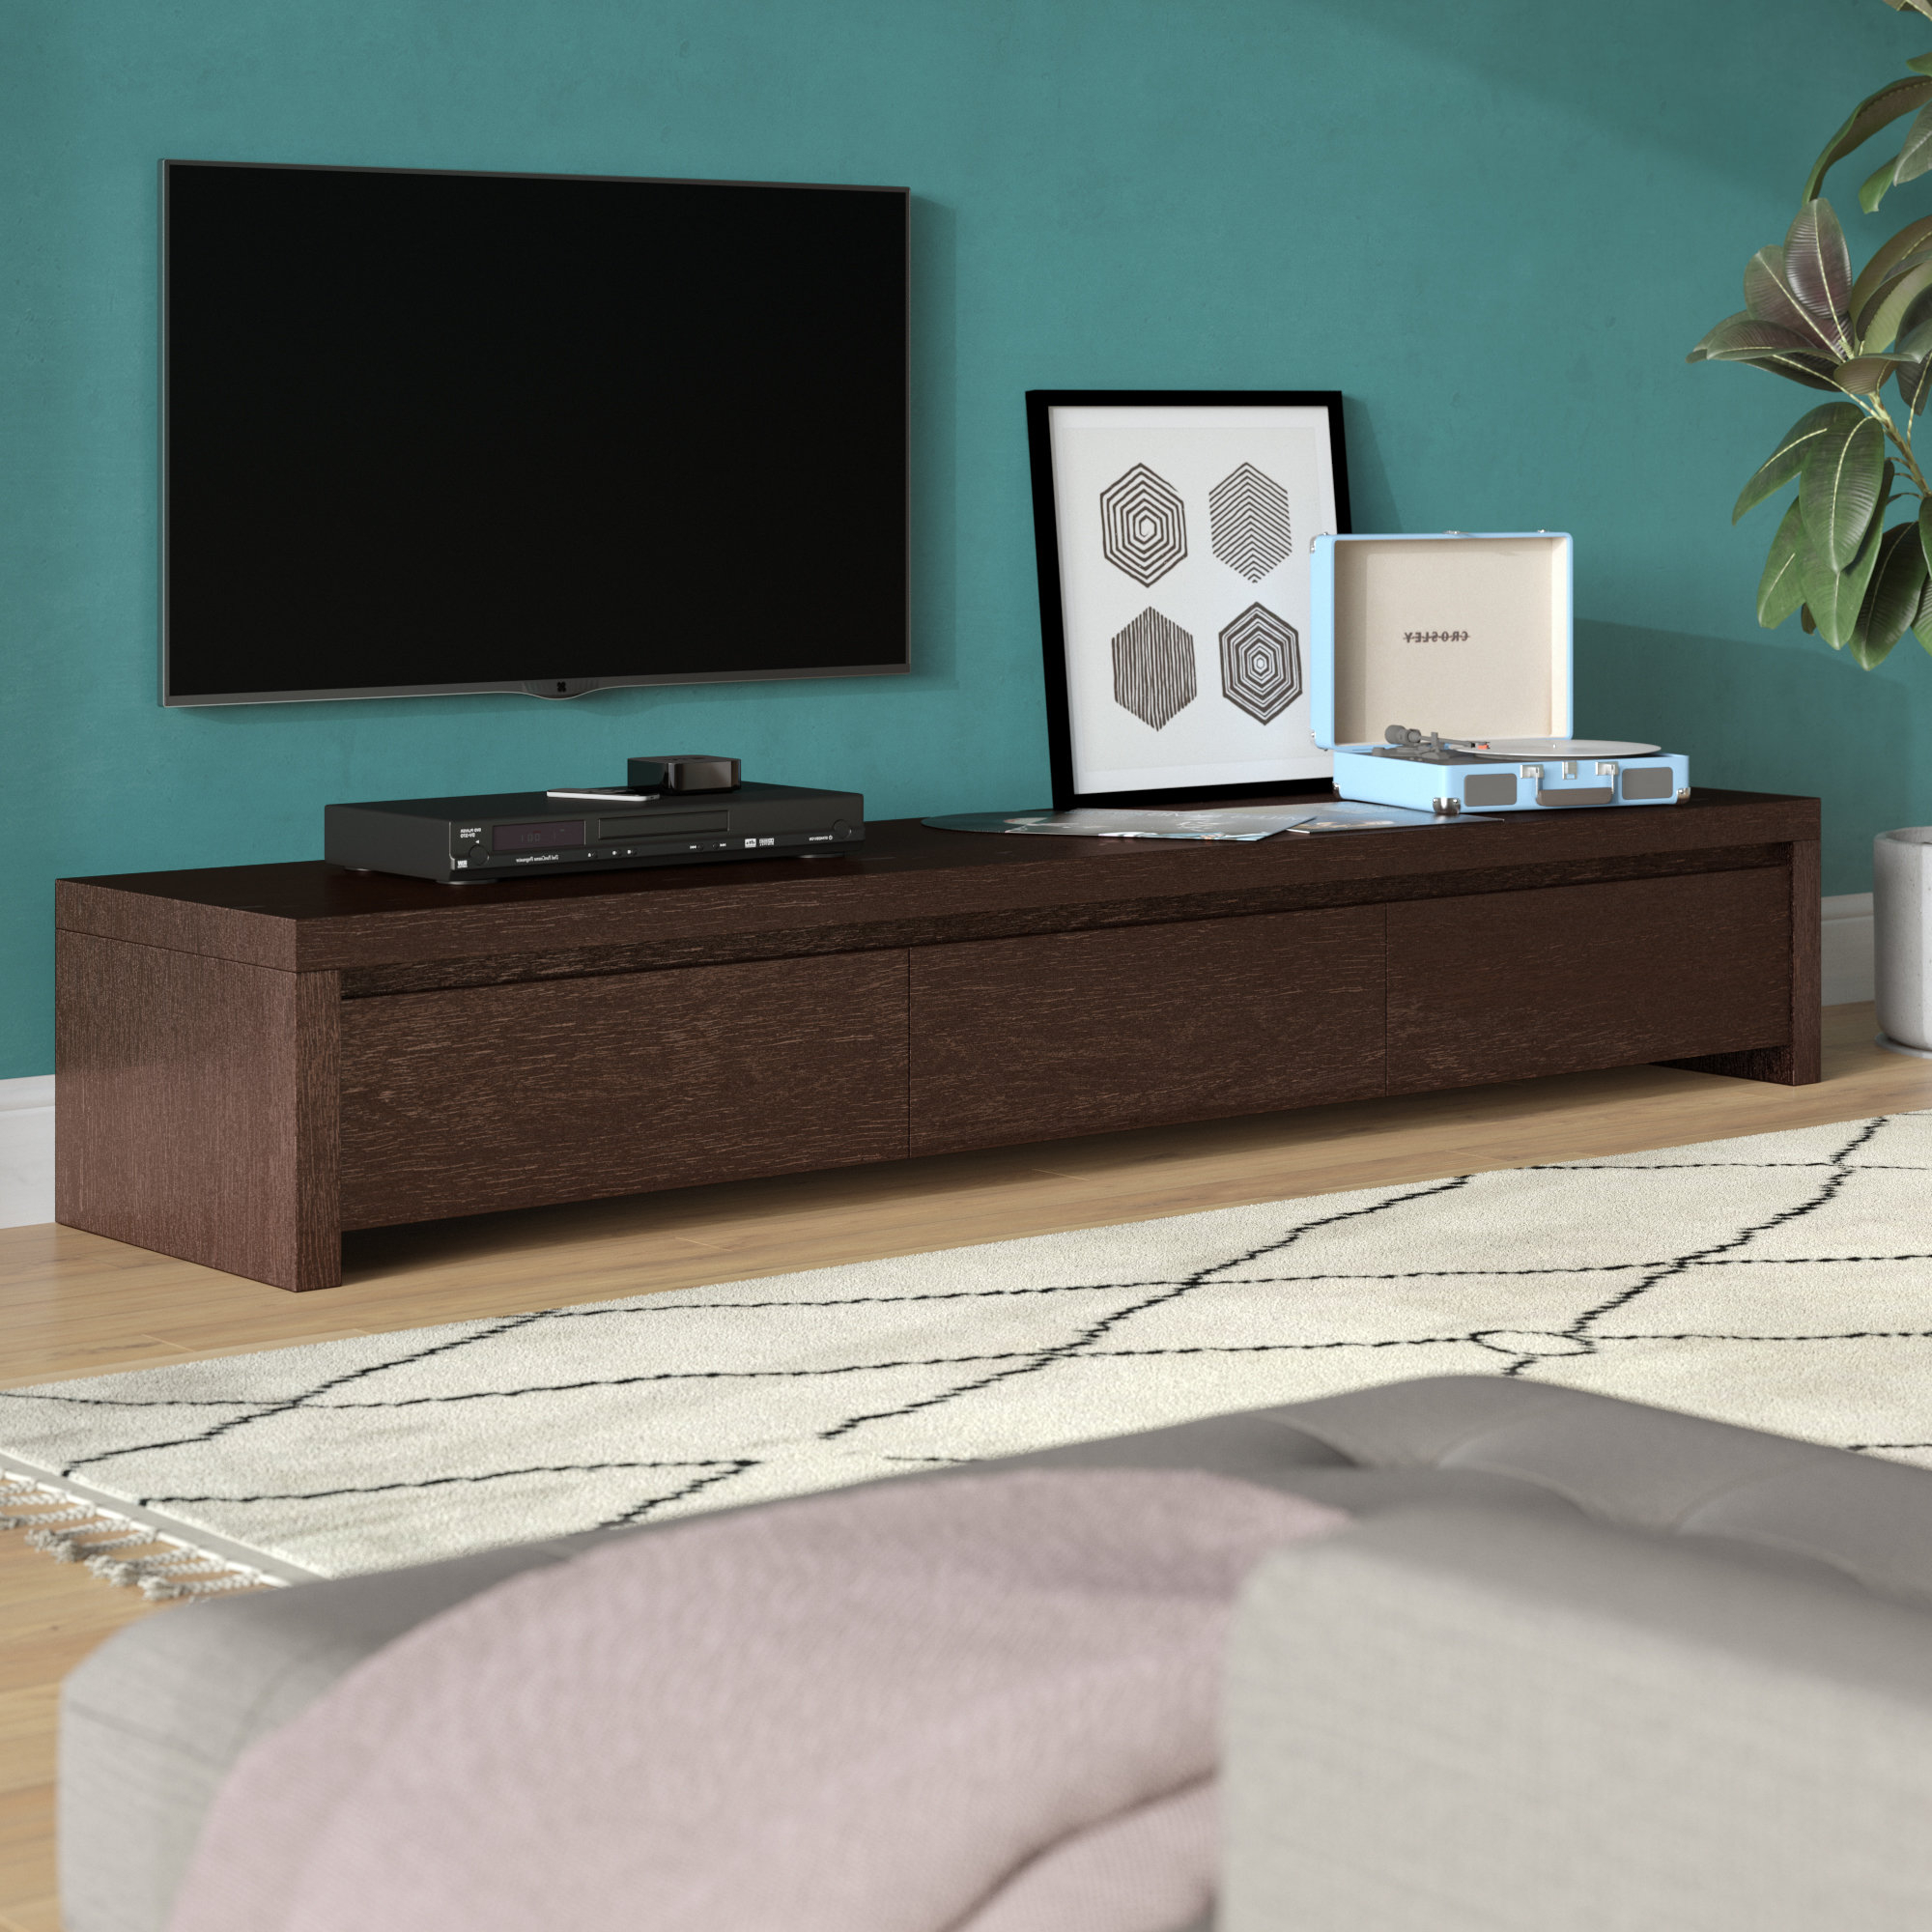 Wayfair With Oak Tv Stands (View 9 of 20)